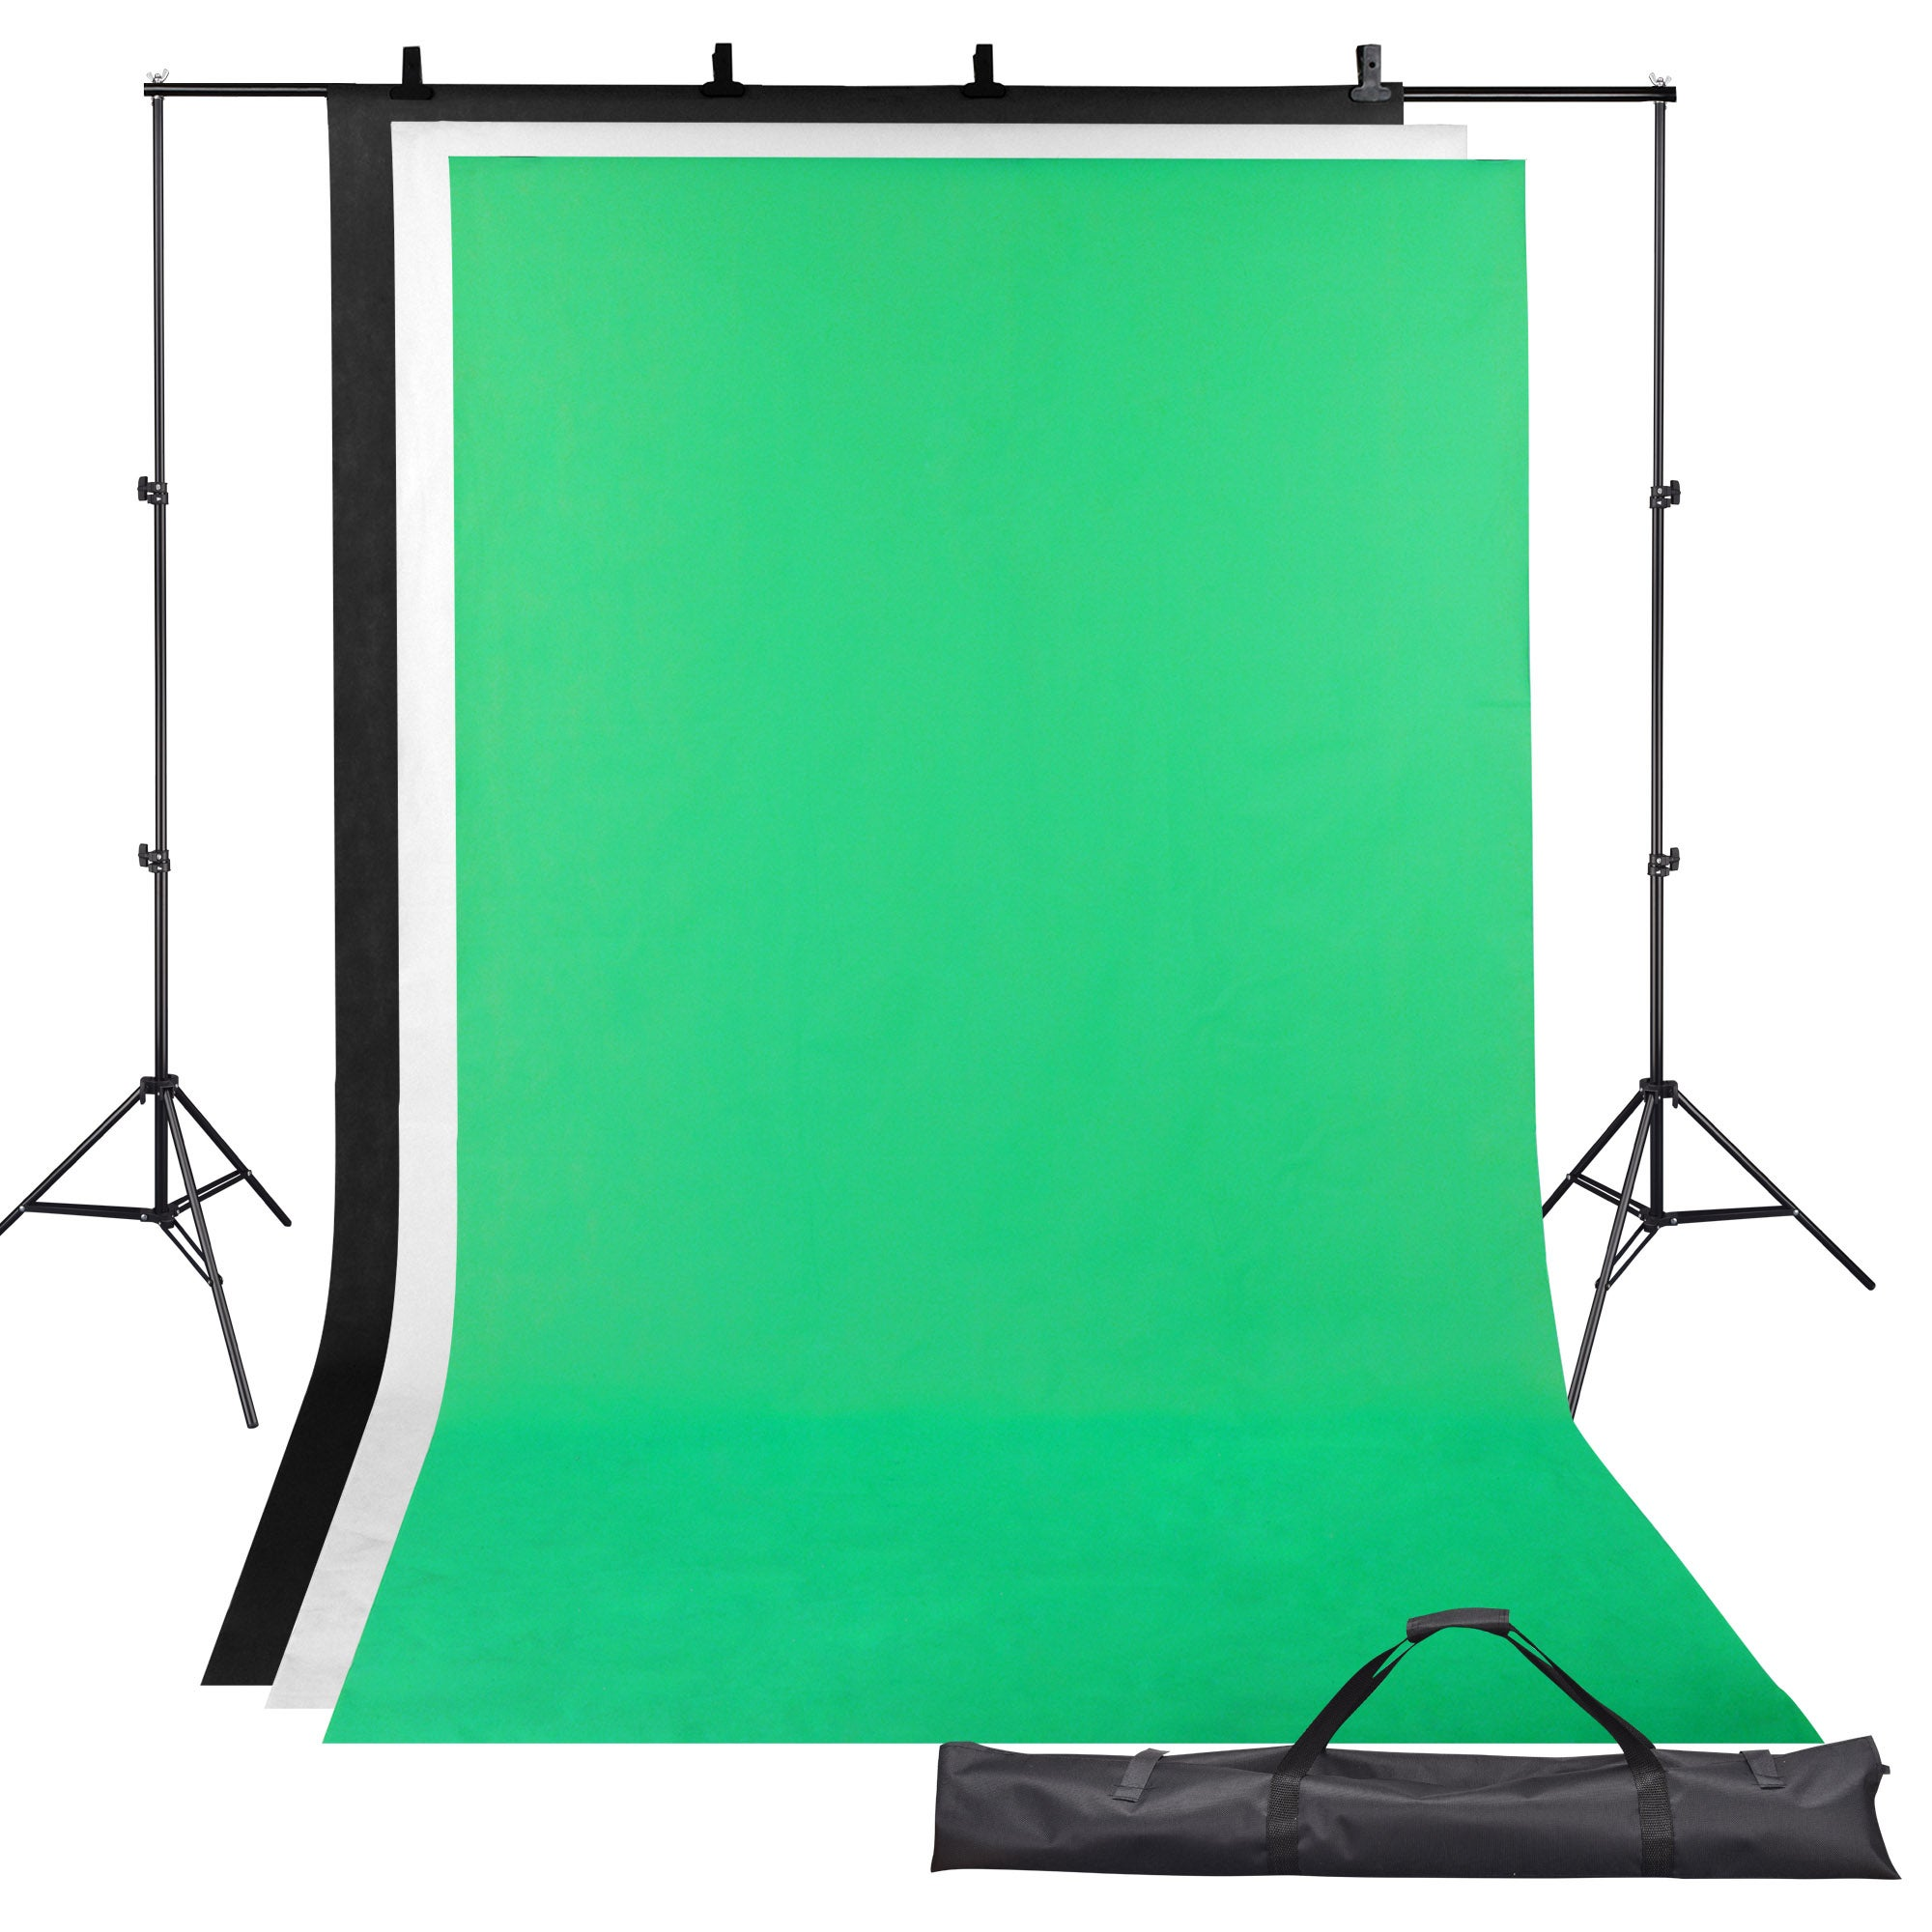 Yescom 2x3m Photography Backdrop Stand Kit Adjustable Background Support Video 1.6x3m Backdrops Green Black White